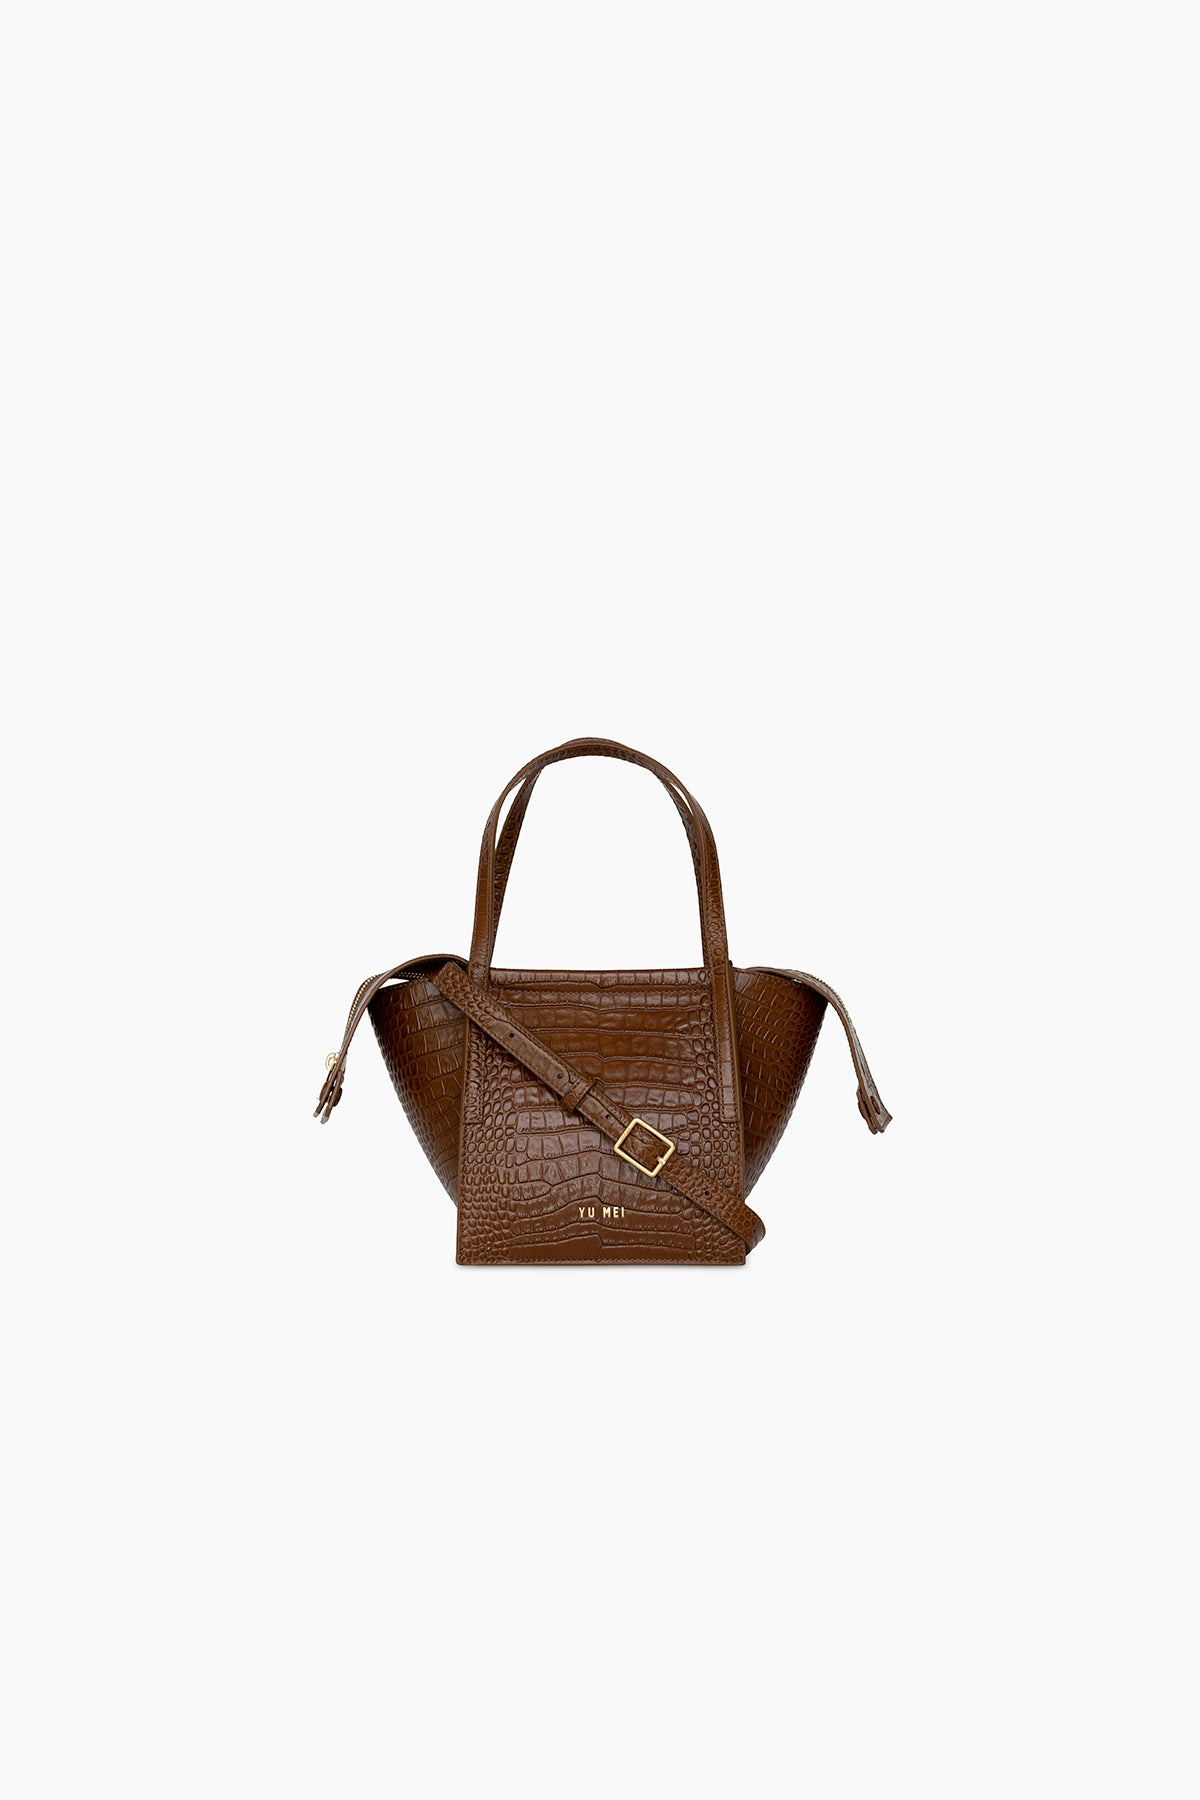 3/4 Milly Bag | Cognac Croc